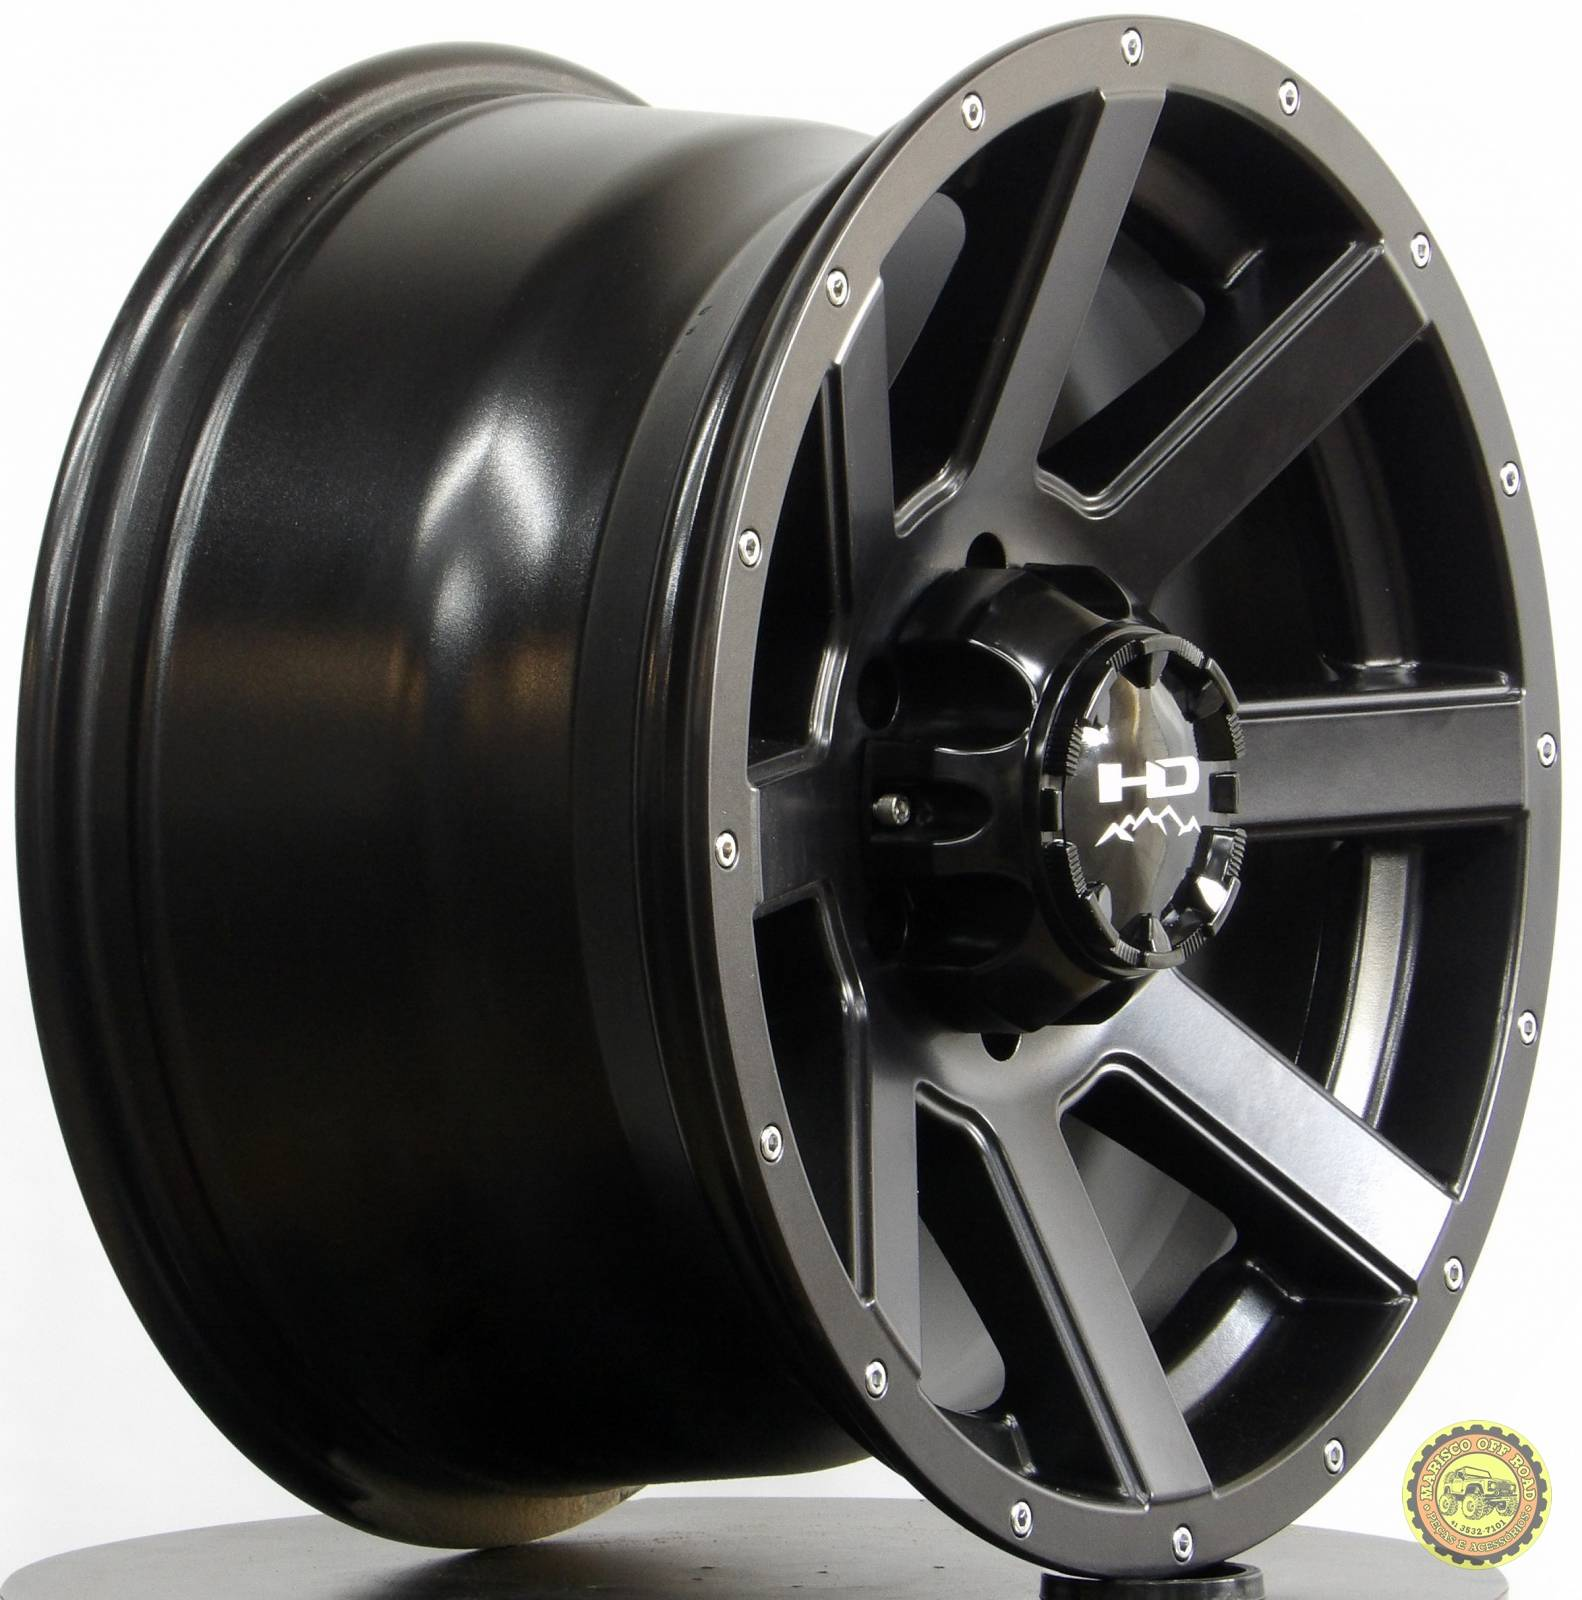 Roda 17x9 HD02, furação 6x139,7, off set -12 TROLLER e PICKUPS - Marisco Off Road